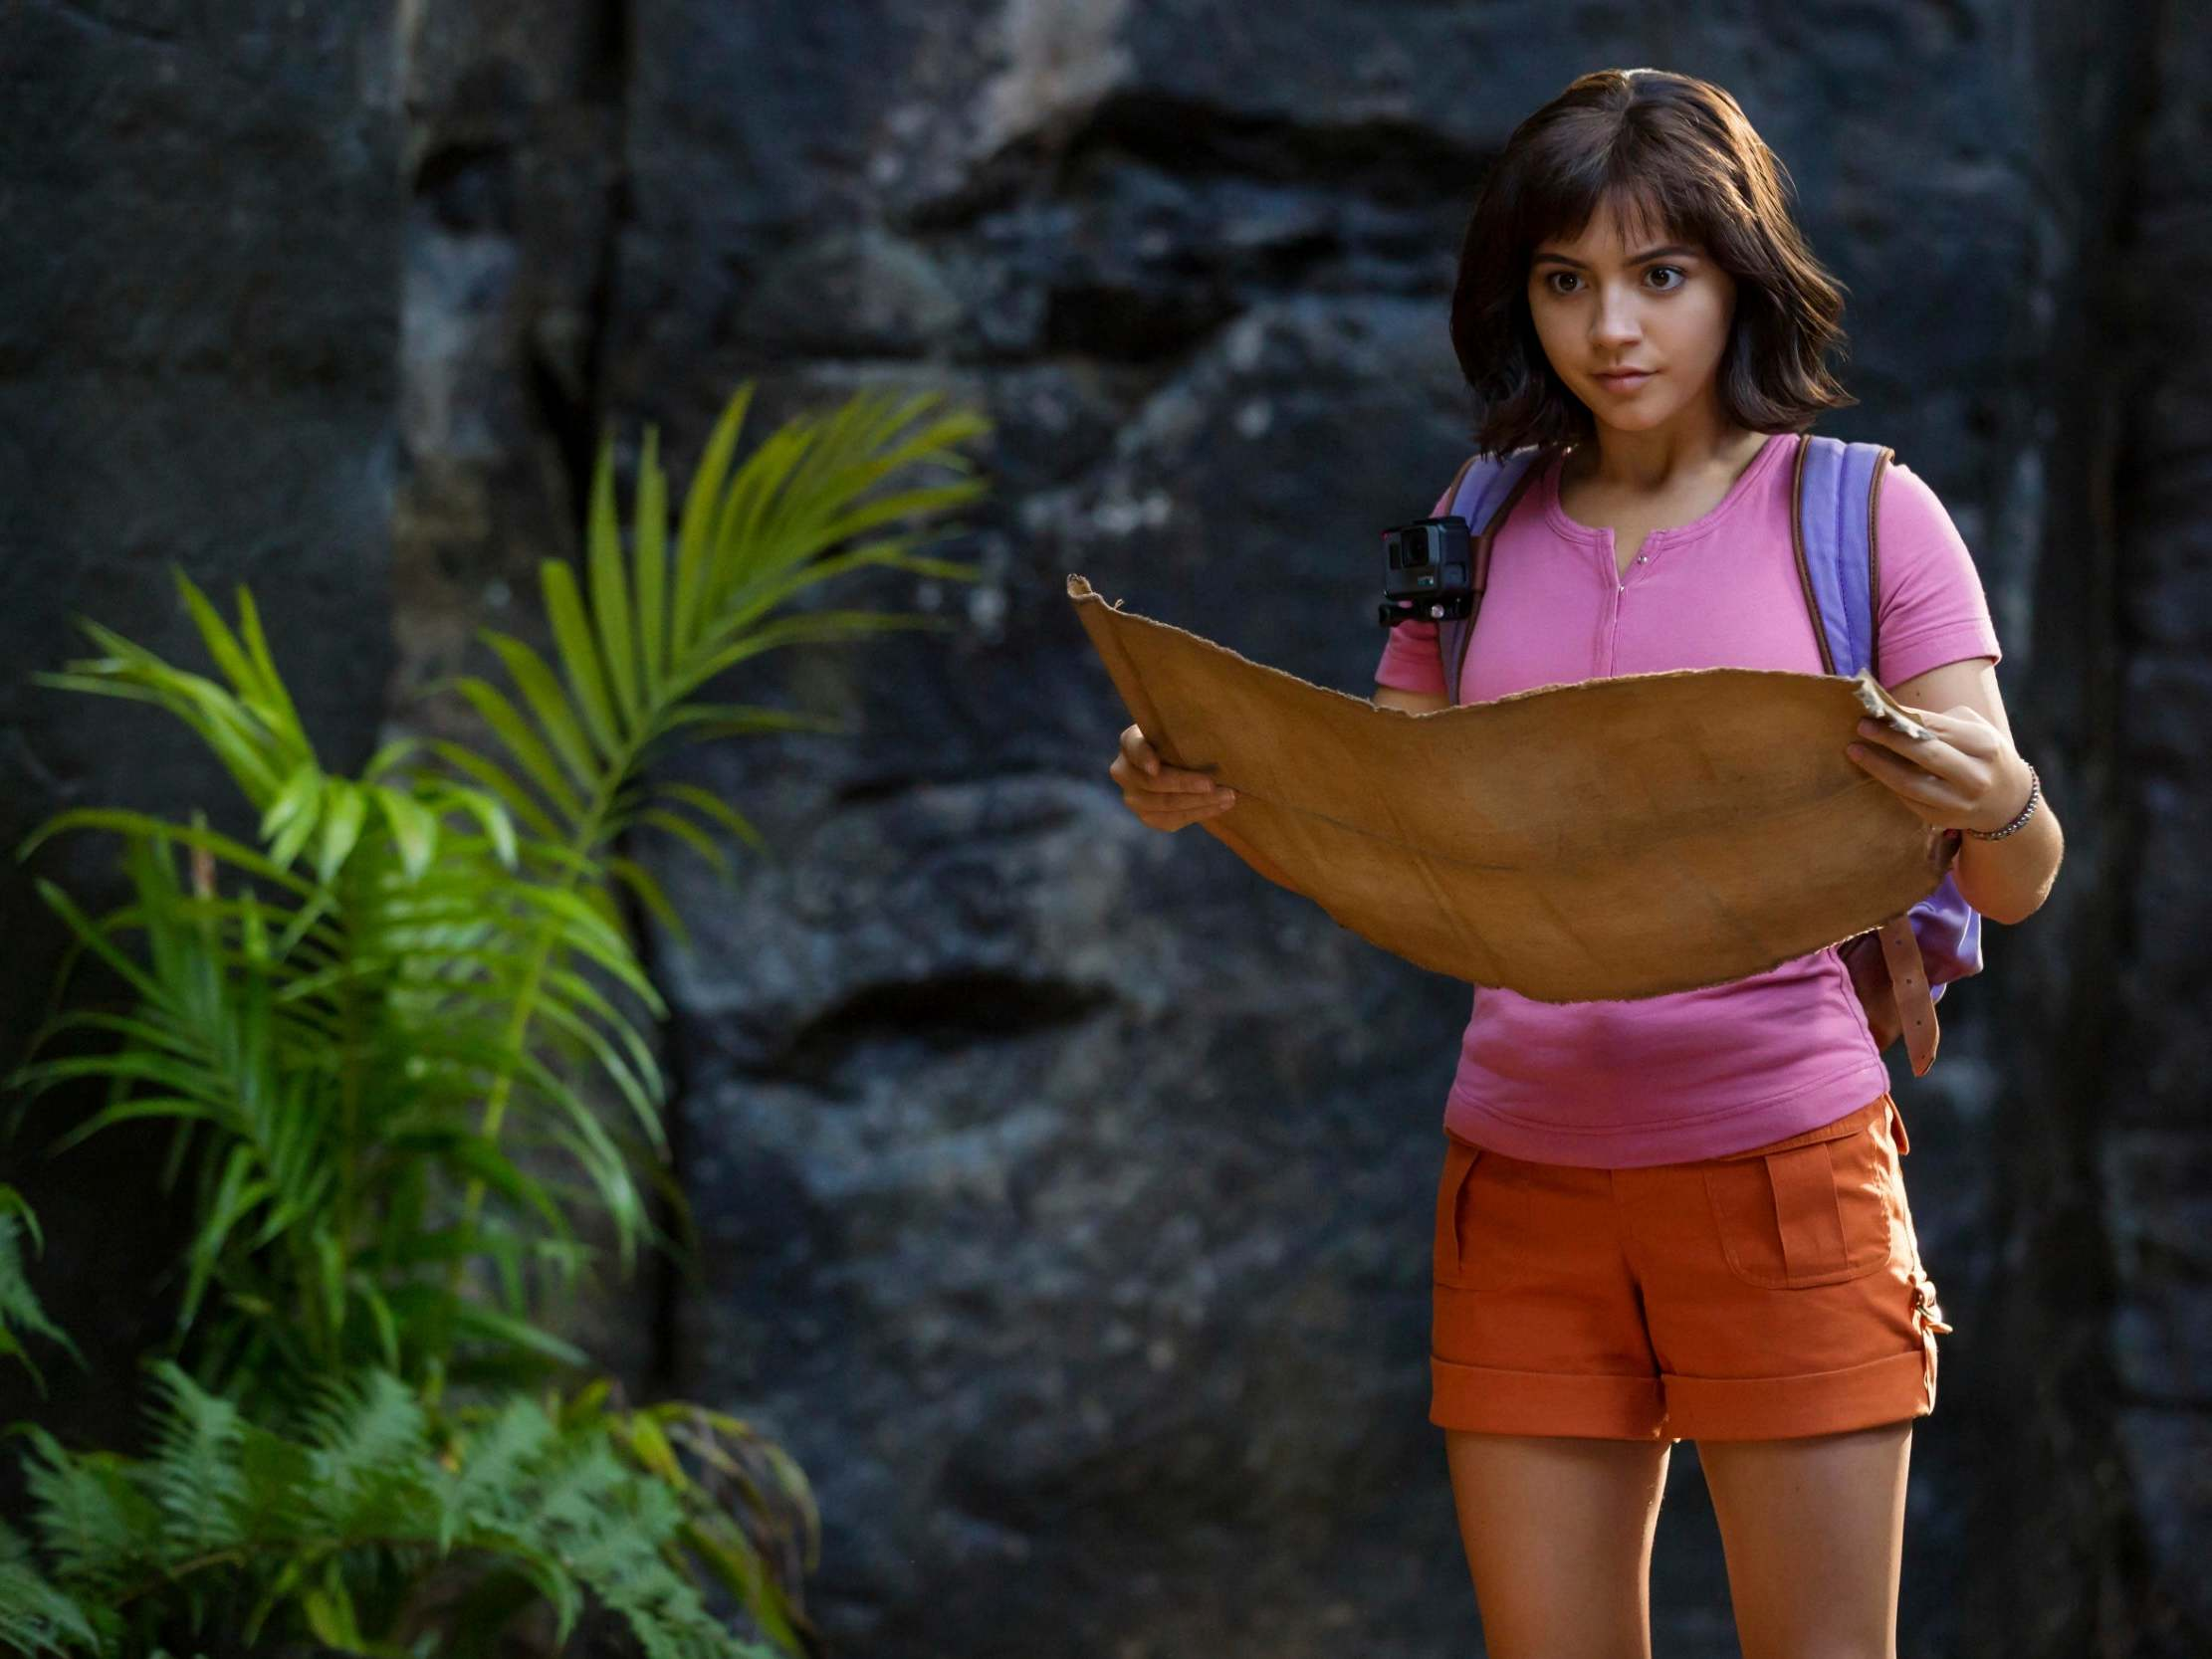 Dora and the Lost City of Gold review: Animated series adaptation ha…